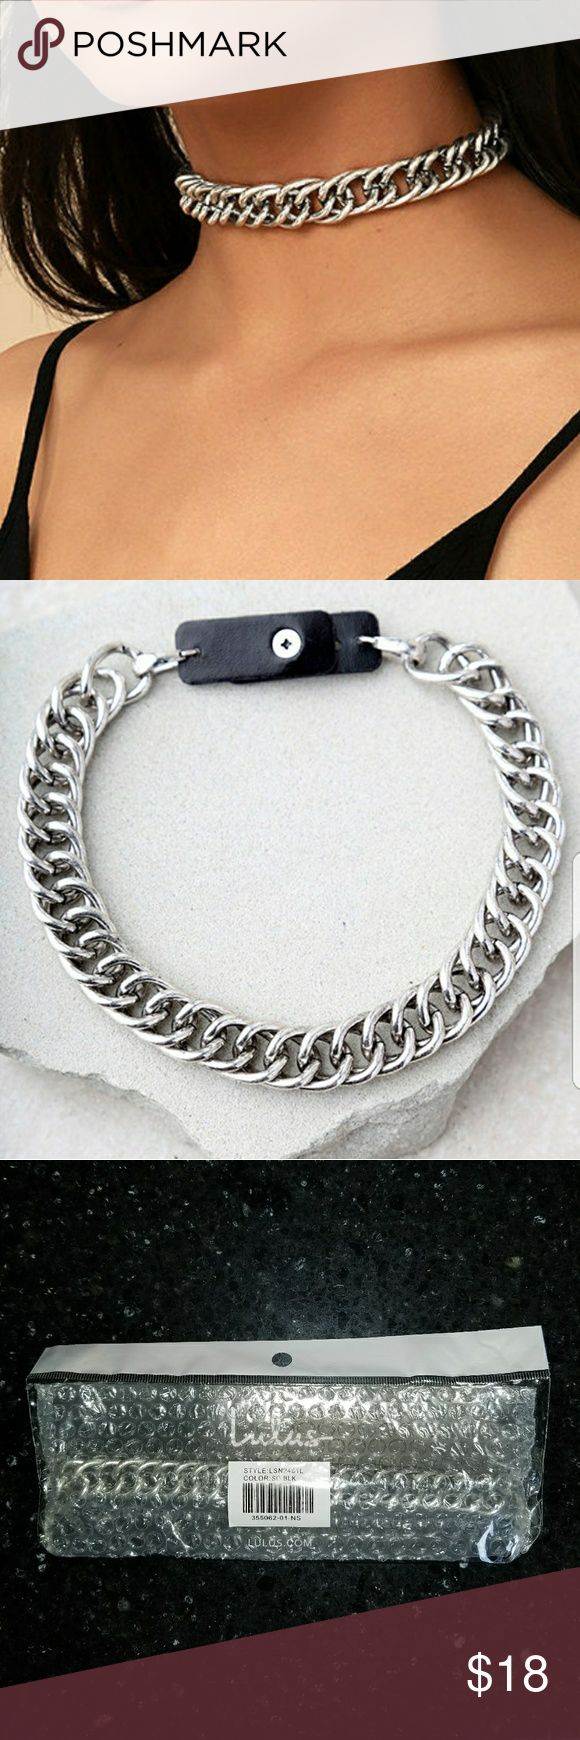 "Chain letter choker Chunky silver chain shapes edgy choker with a tough girl vibe. Necklace measures 11"" with three hole punch adjustments.  All vegan friendly, man made materials. Jewelry Necklaces"